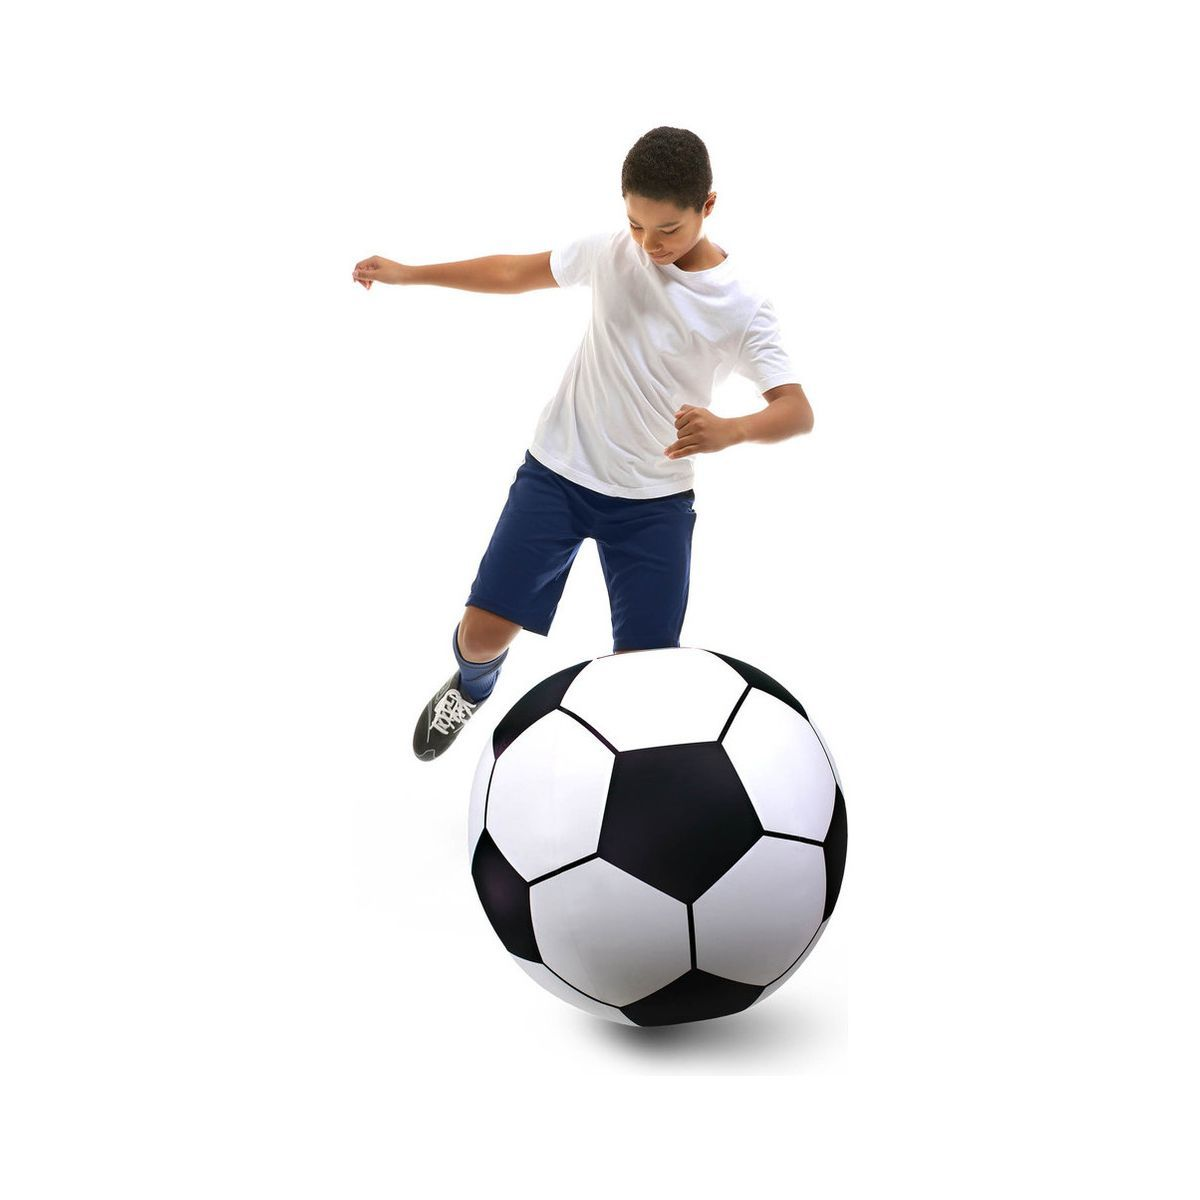 A boy plays with a giant inflatable soccer ball photo